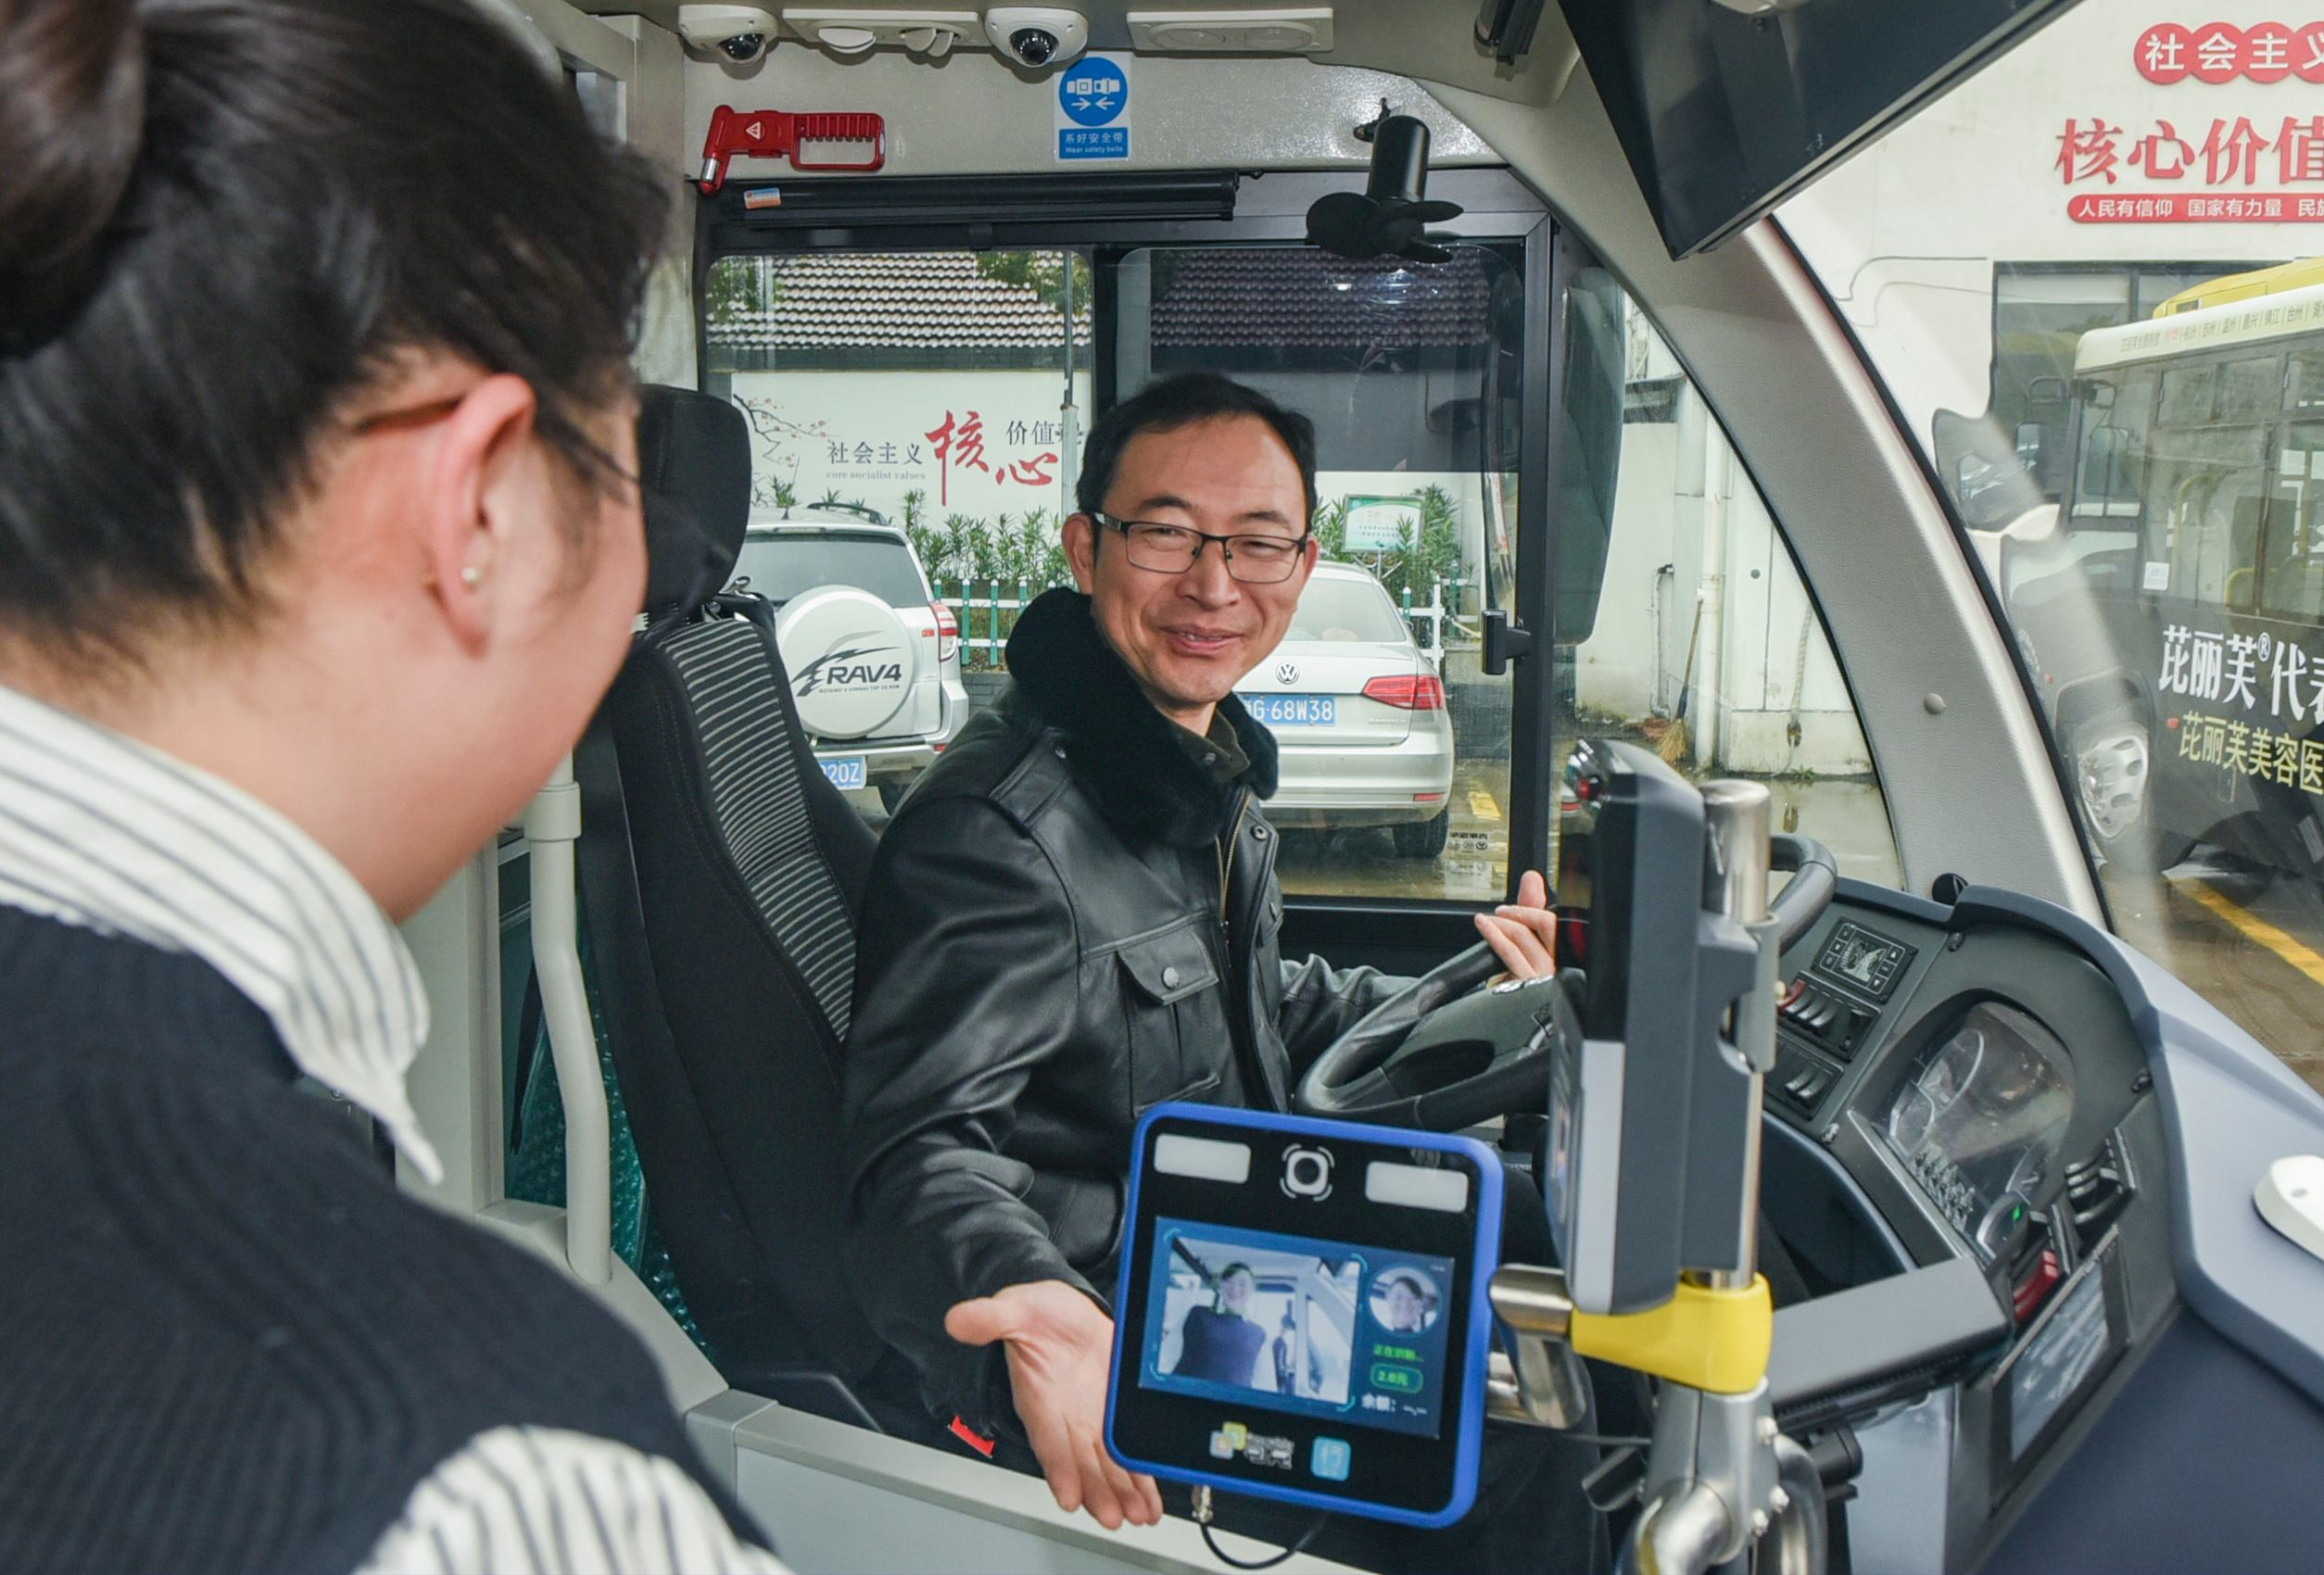 Face-scanning for bus payments launched